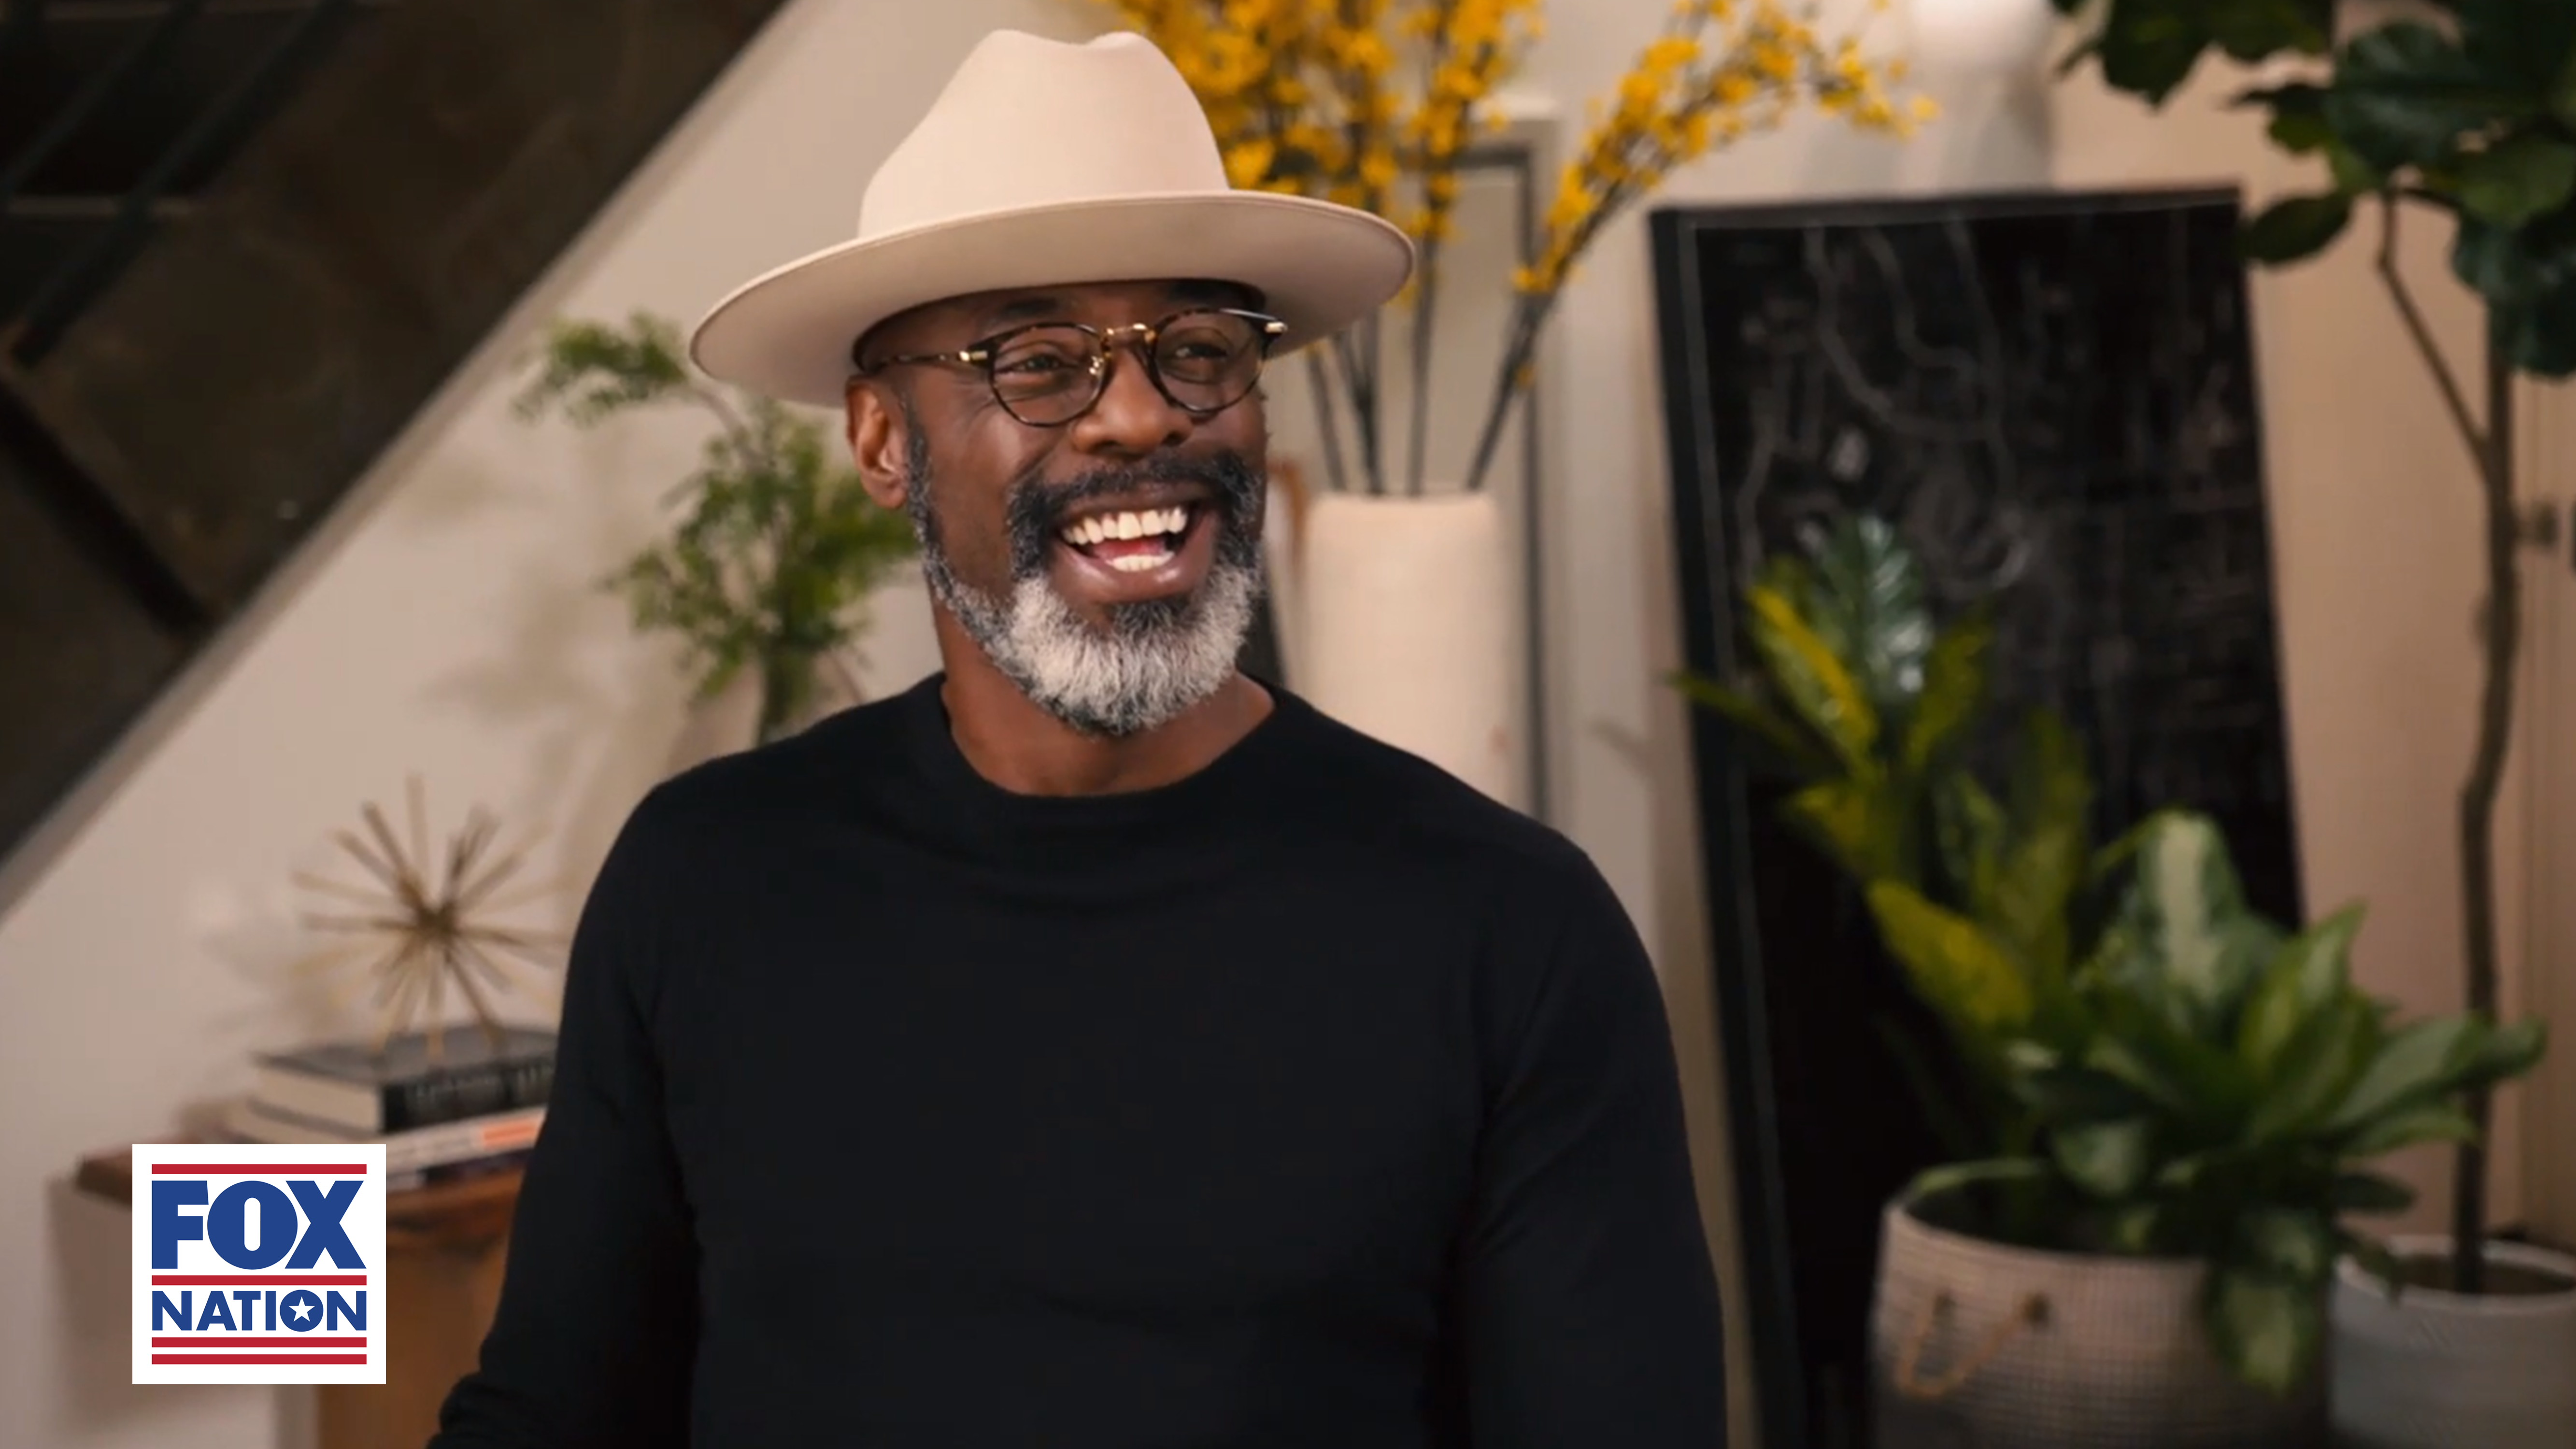 Isaiah Washington's new show, Kitchen Talk, is currently streaming on Fox Nation. (Photo: Fox Nation)